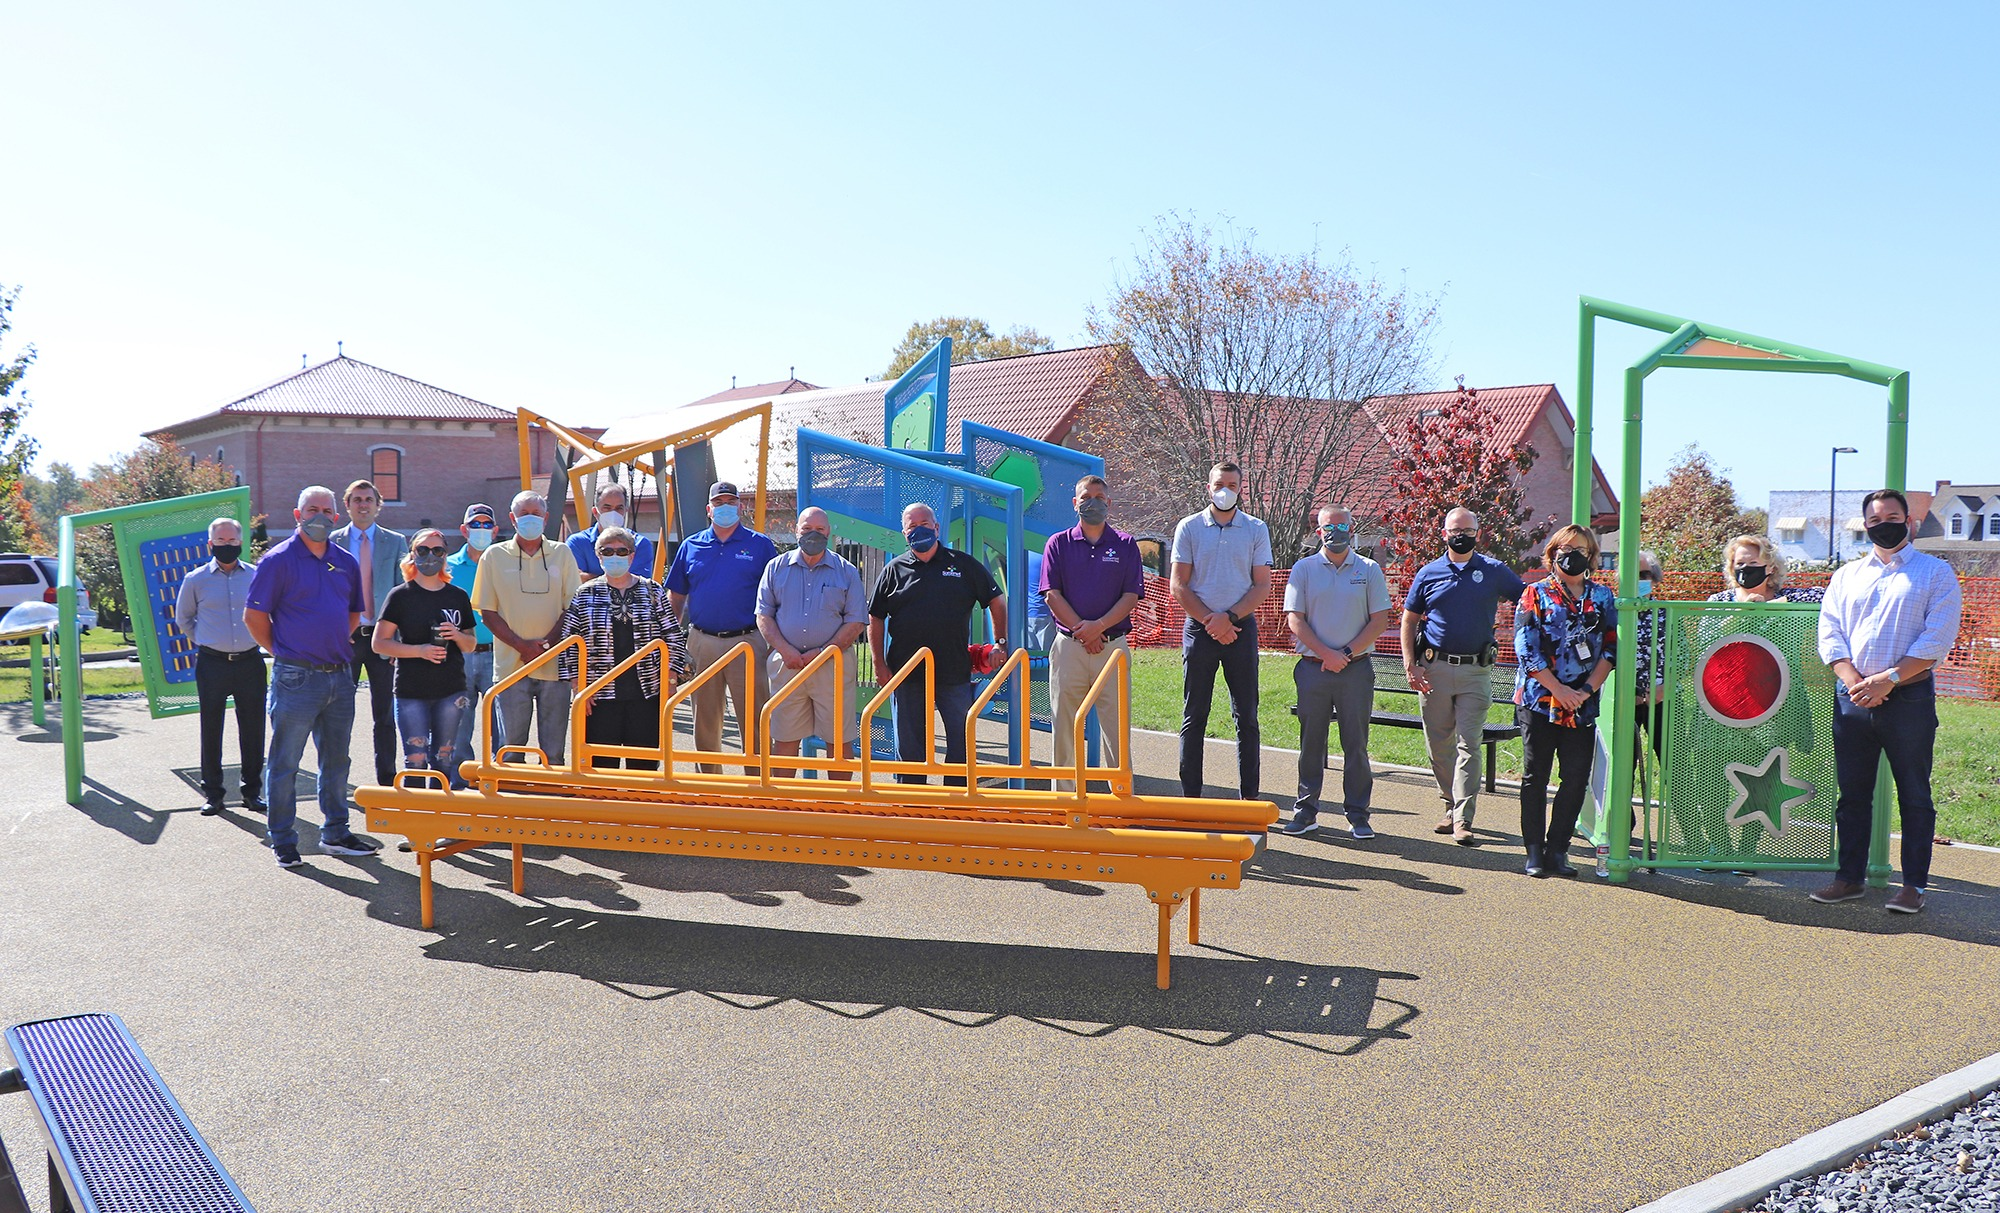 group of people standing on playground